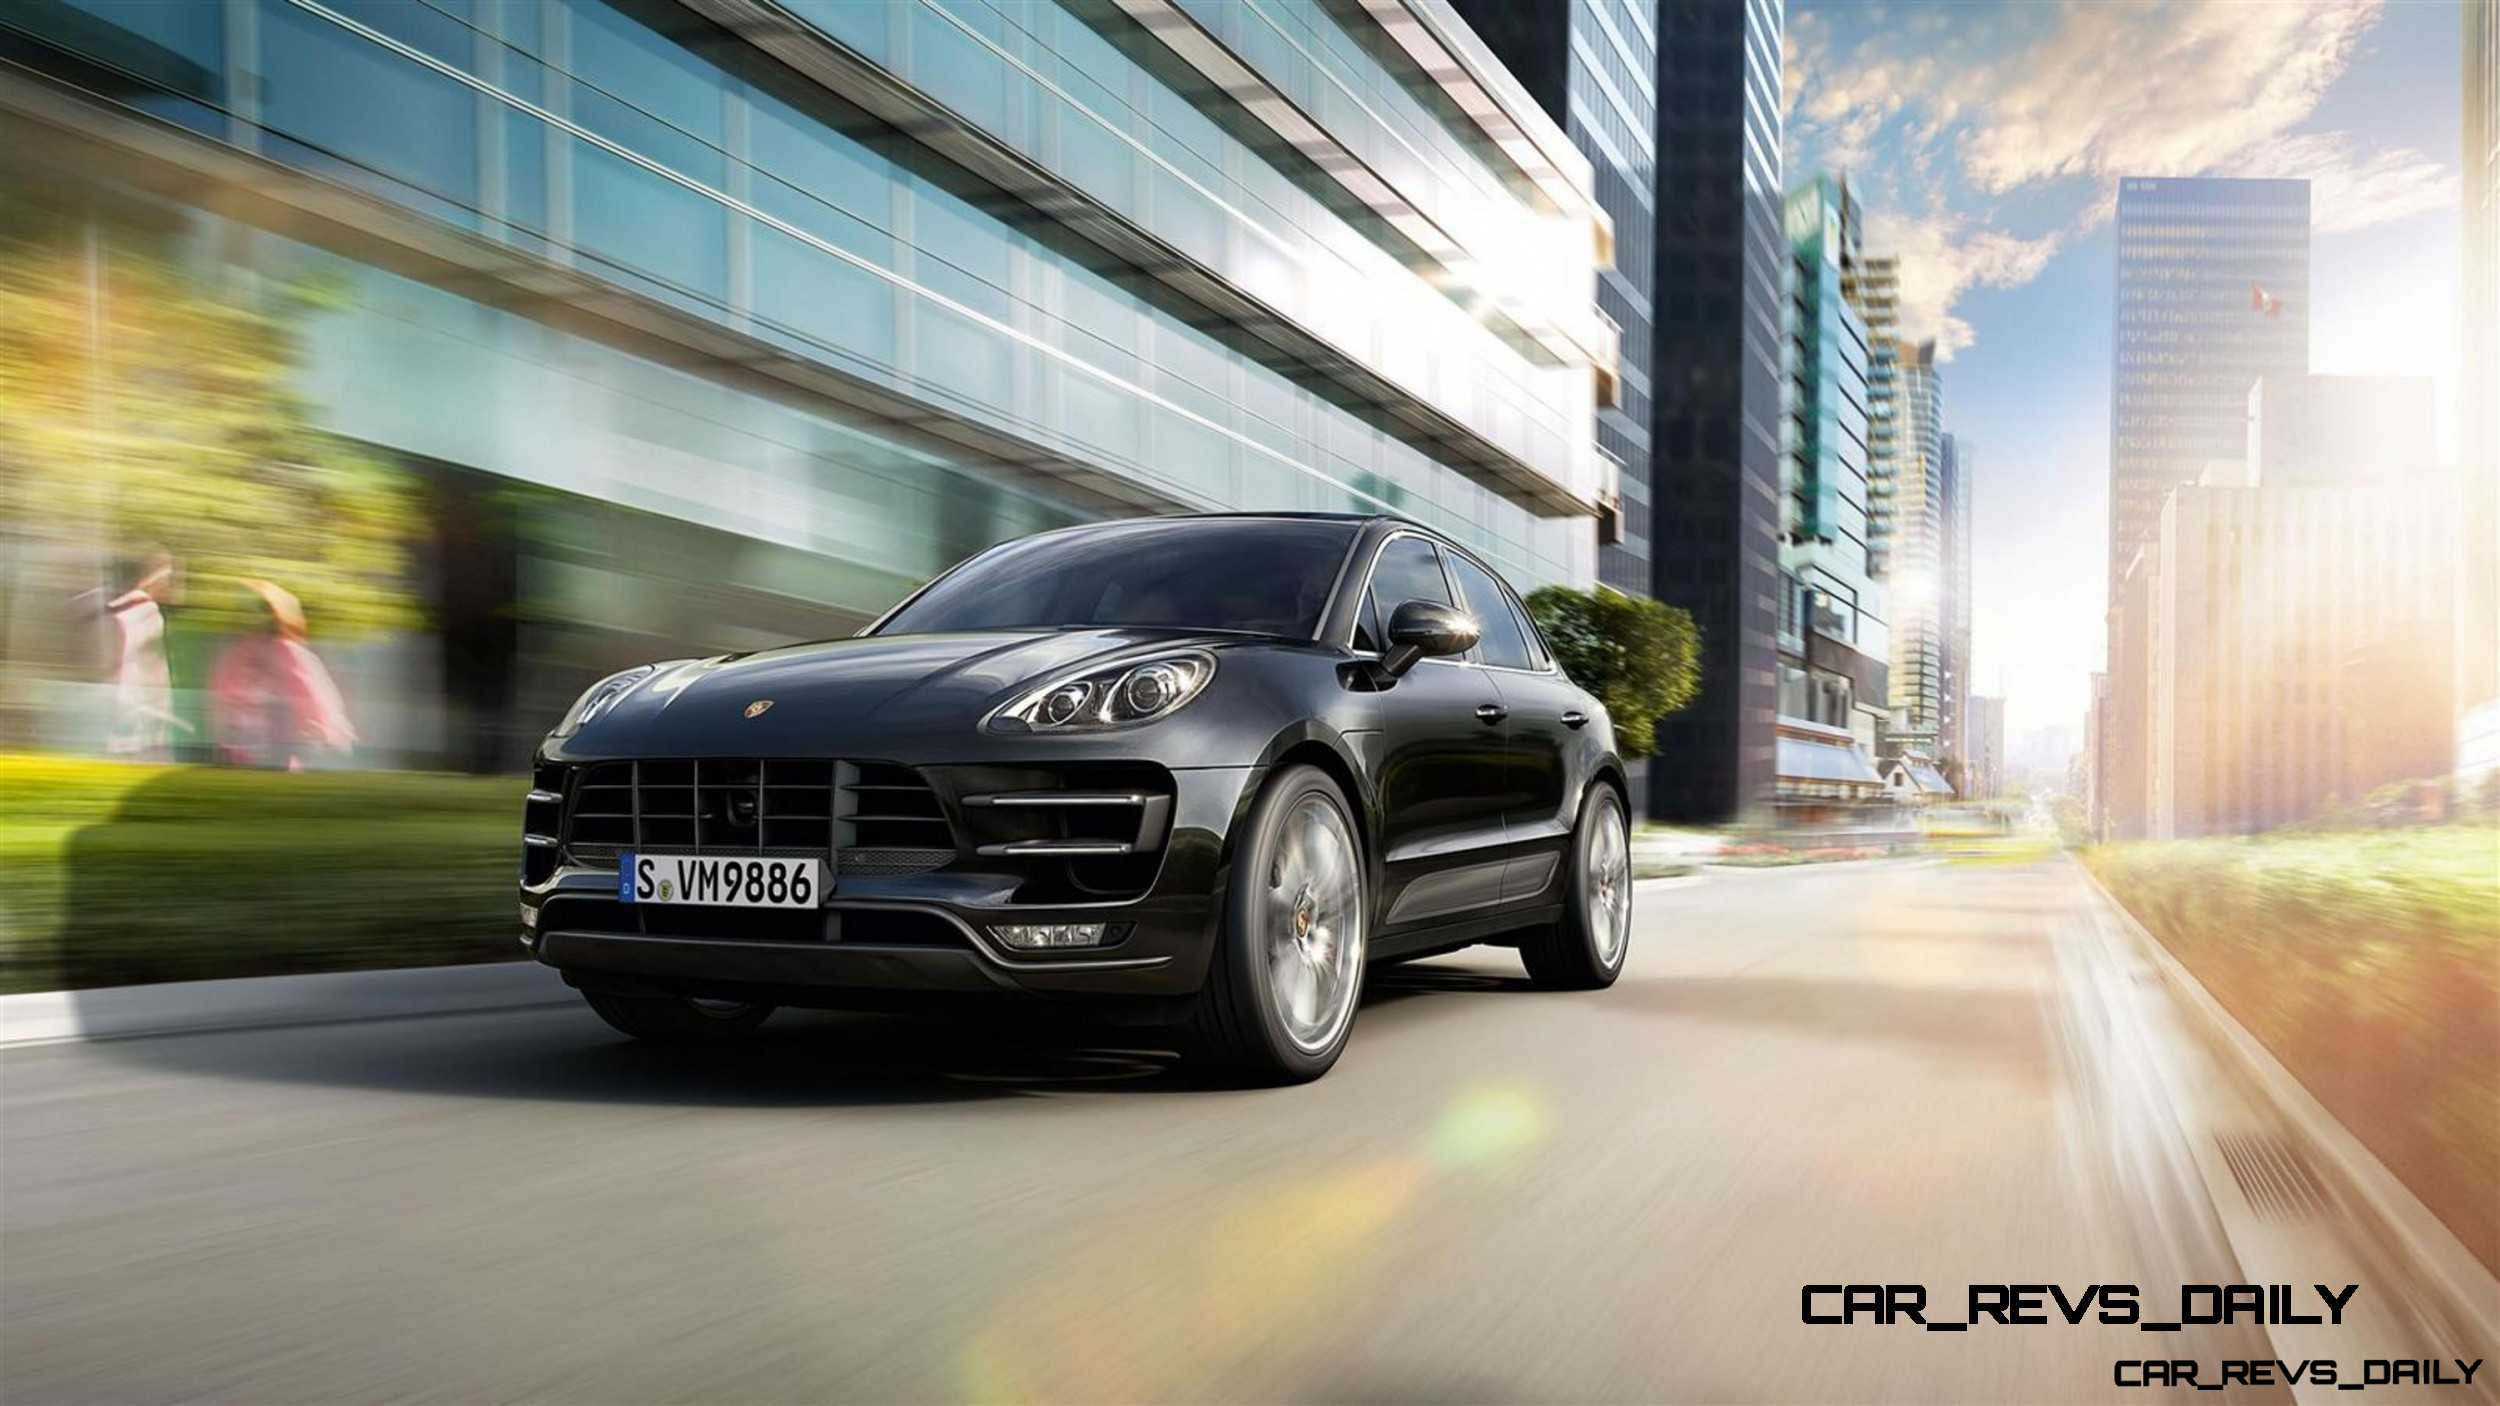 2015 Porsche Macan - Latest Images - CarRevsDaily.com 23